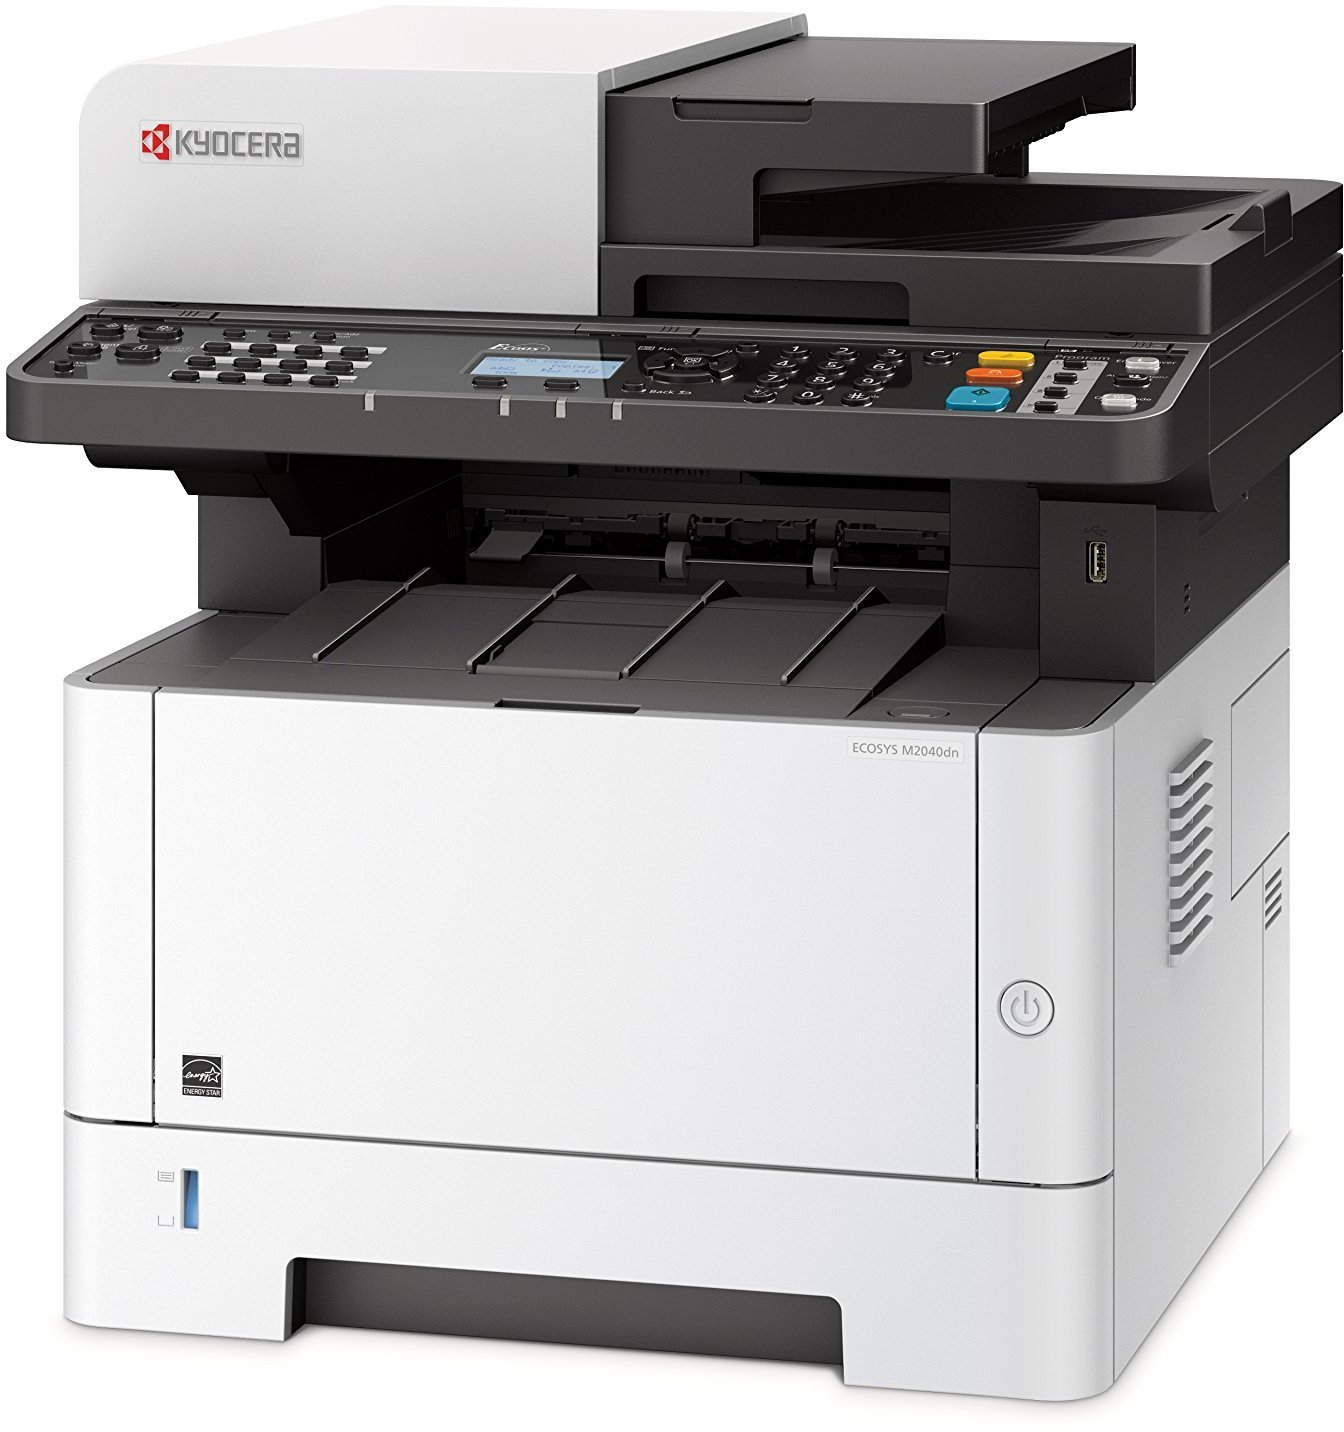 Kyocera TASKalfa 7550ci MFP PCL5e/PCL6/KPDL Drivers for Windows